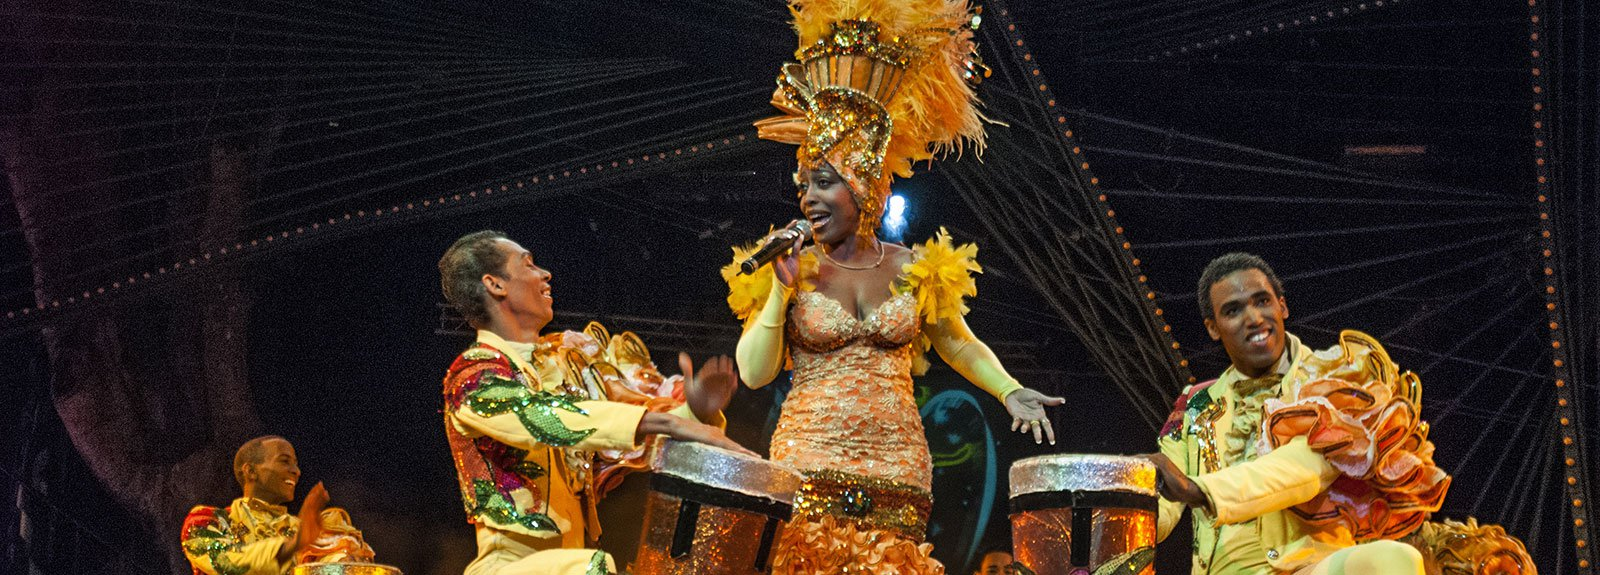 Dancers with costumes performing at Tropicana